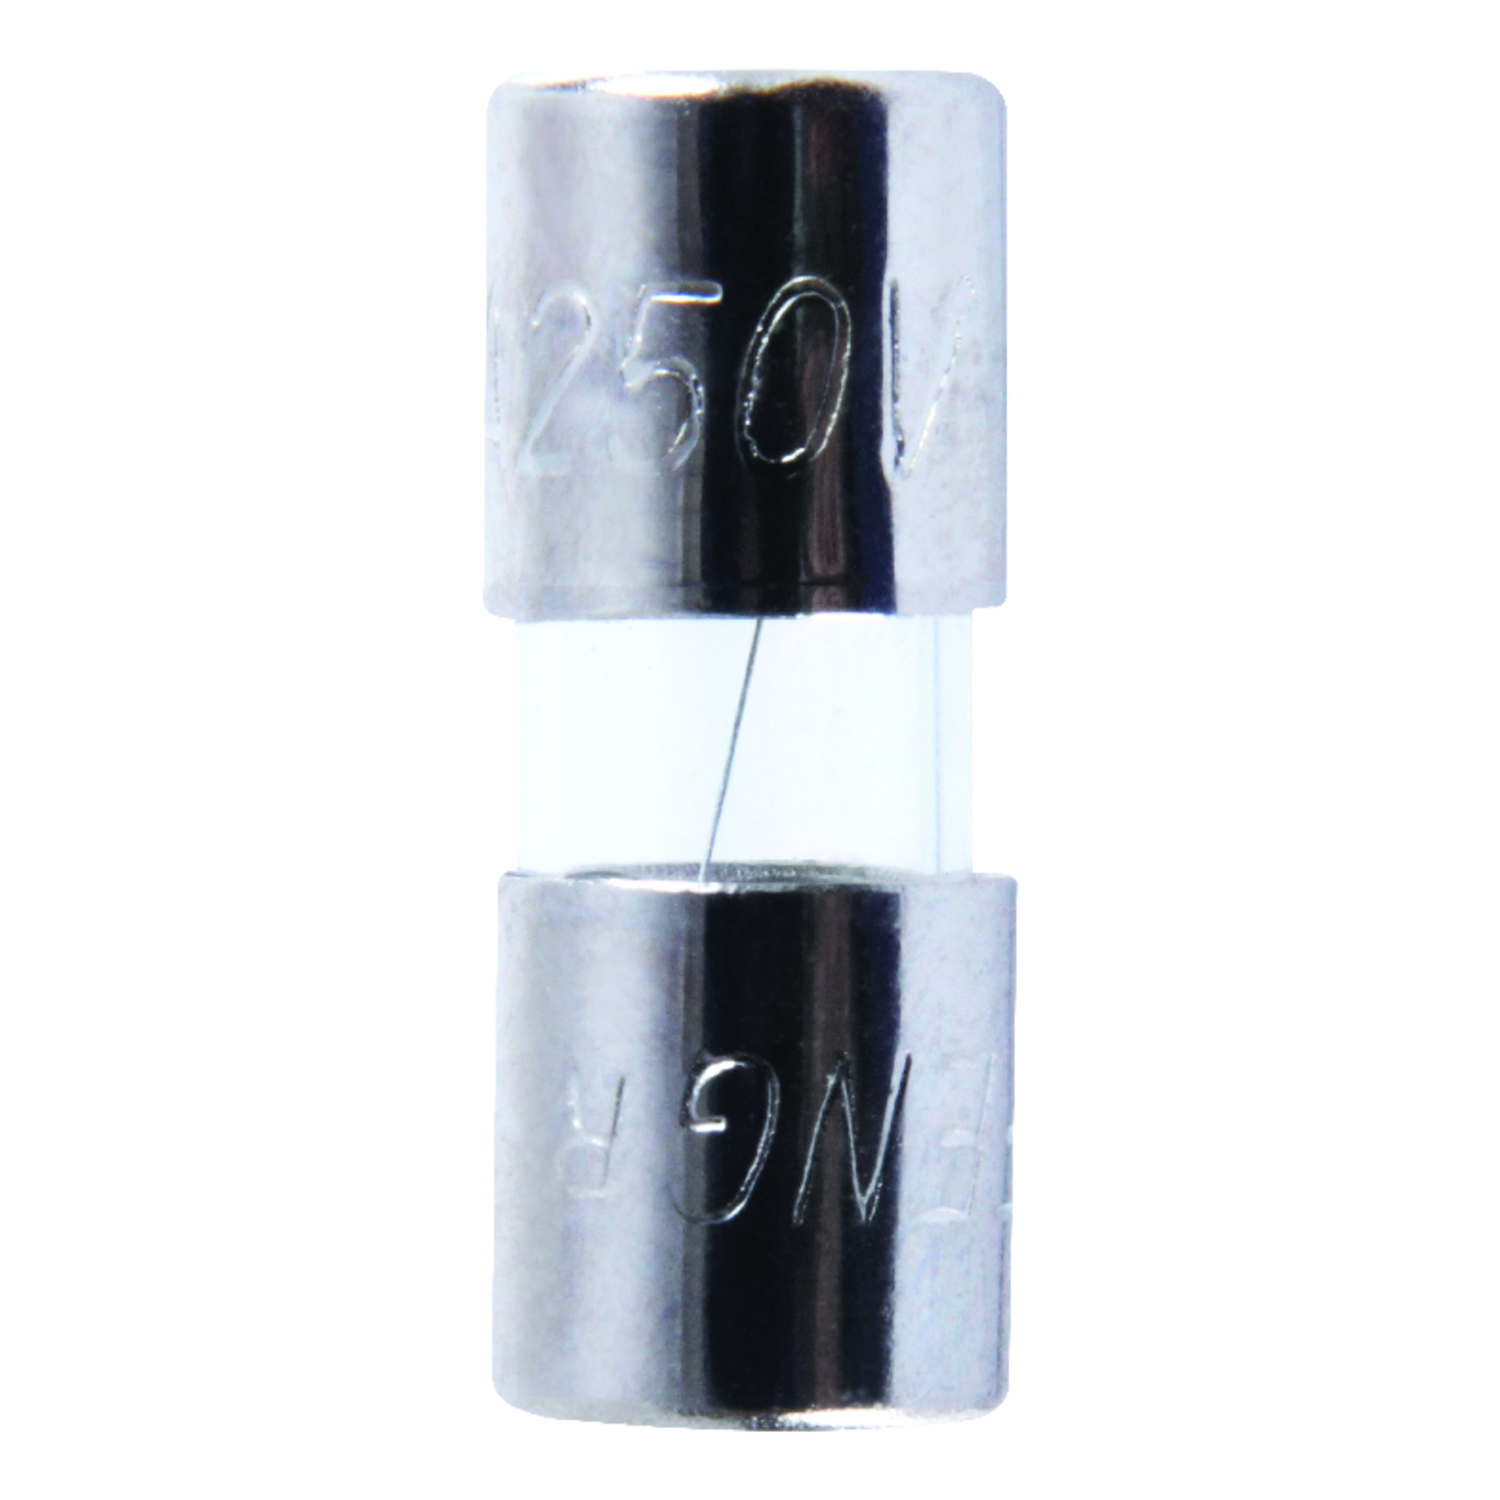 Jandorf  AGA  1.5 amps 250 volts Glass  Fast Acting Fuse  4 pk